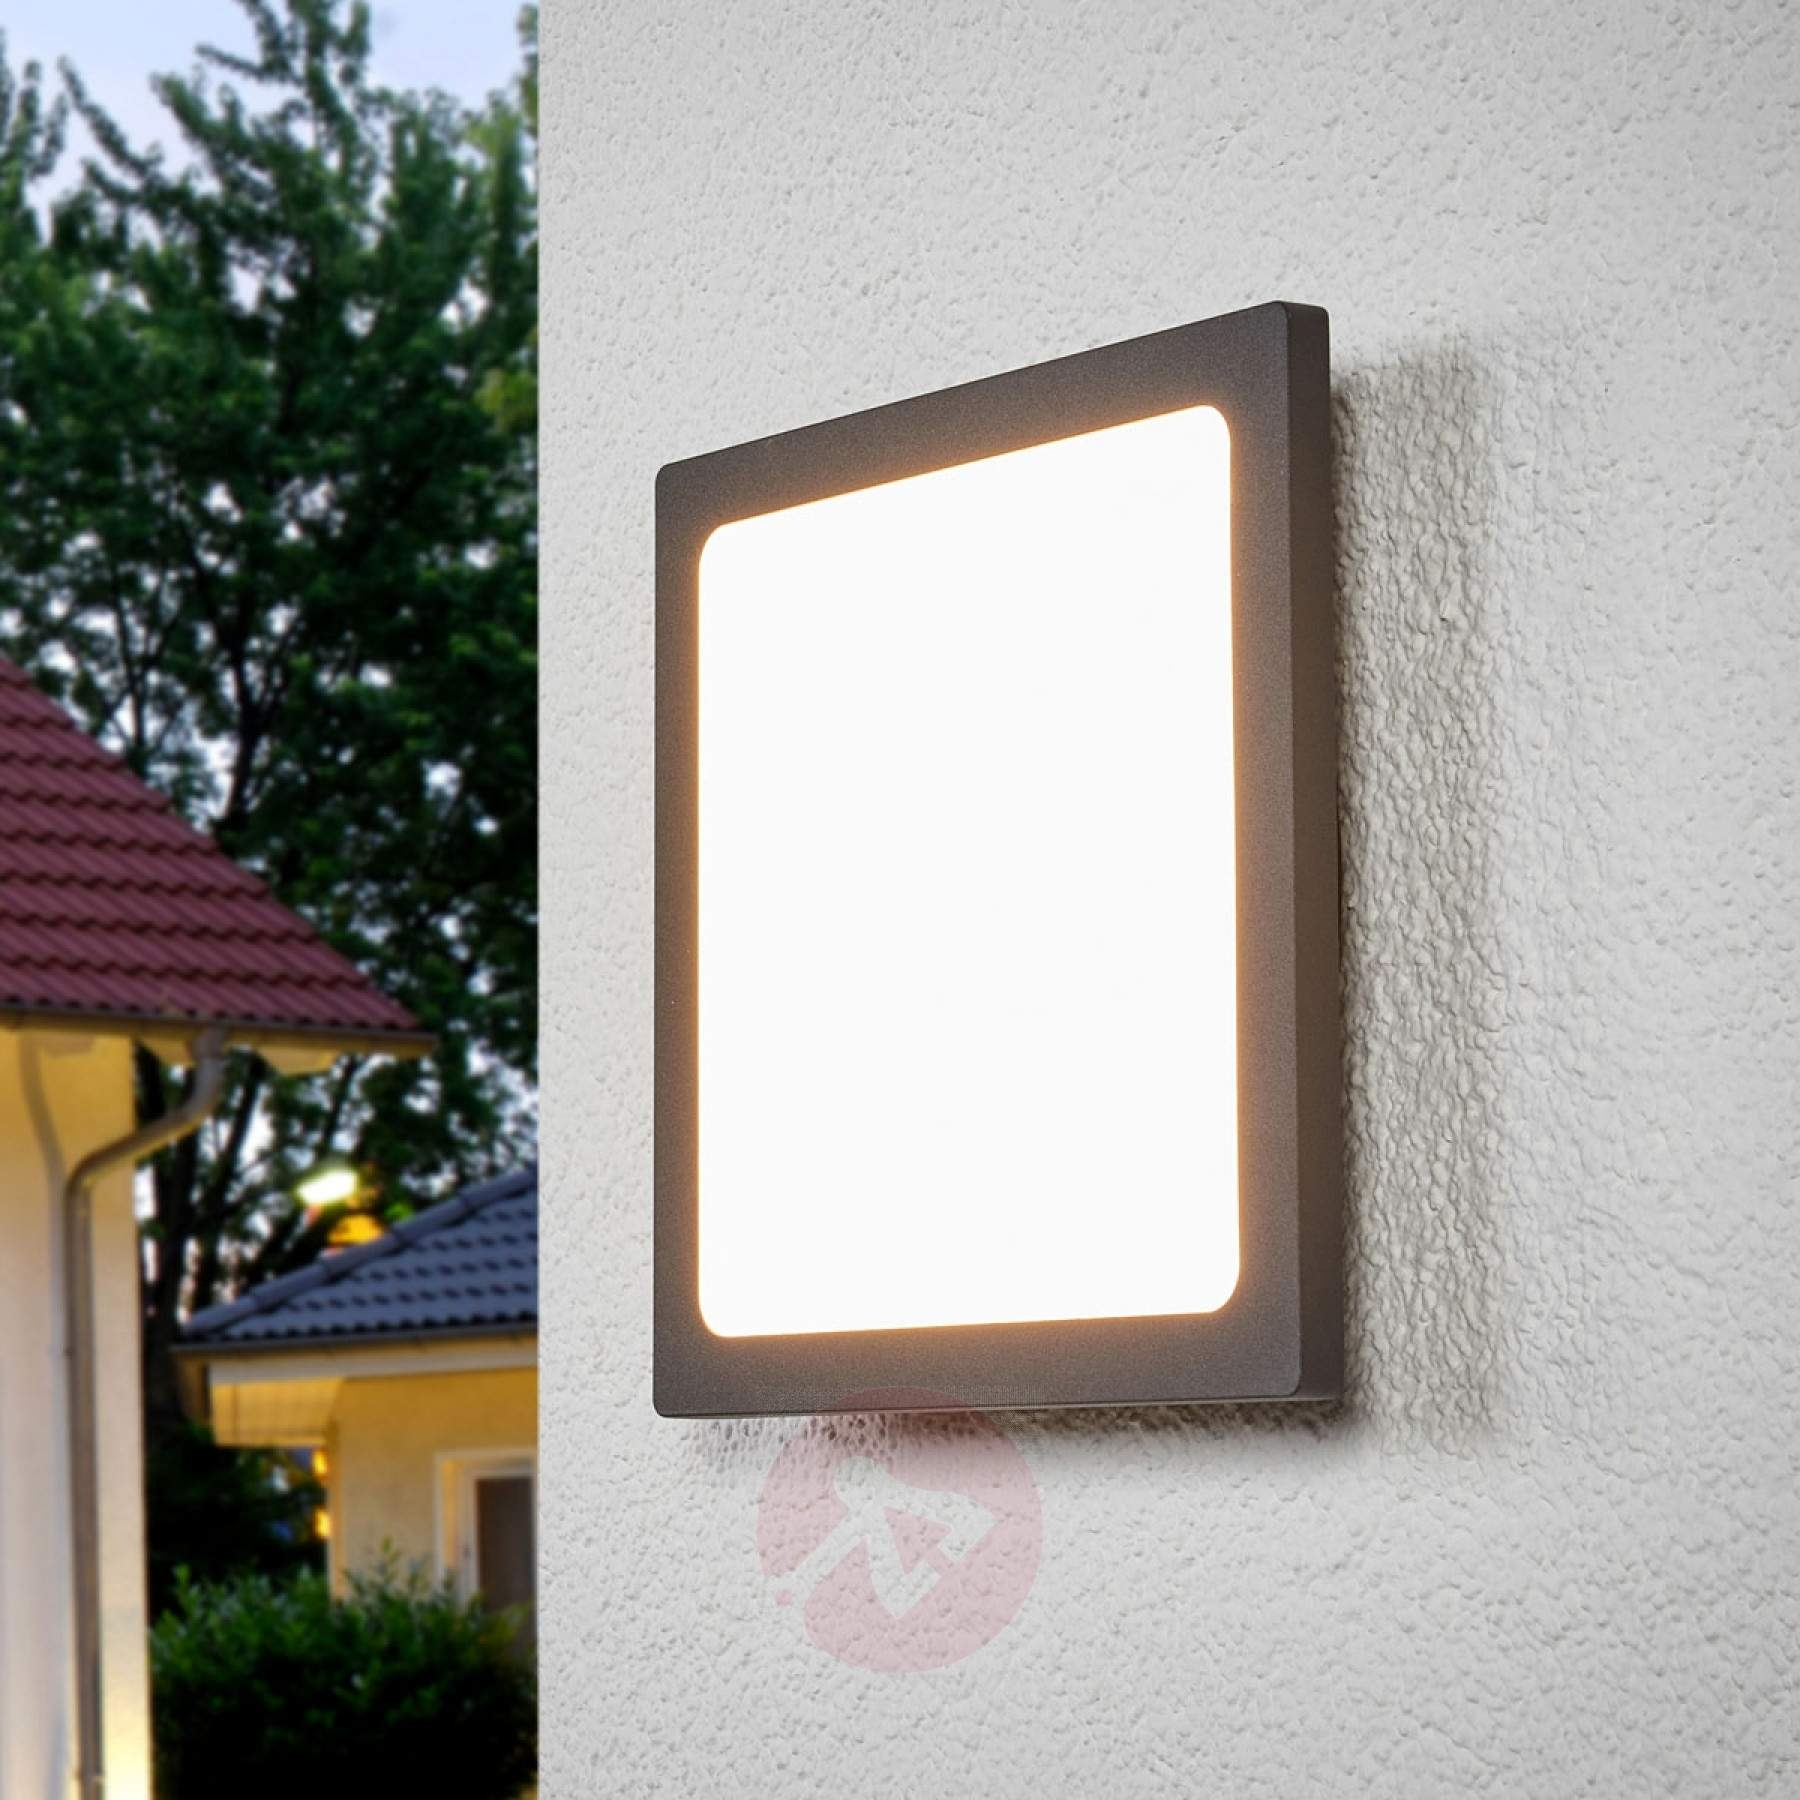 Inspiration about Mabella Led Outdoor Ceiling Lamp With Sensor | Lights.ie For Outdoor Ceiling Sensor Lights (#10 of 15)